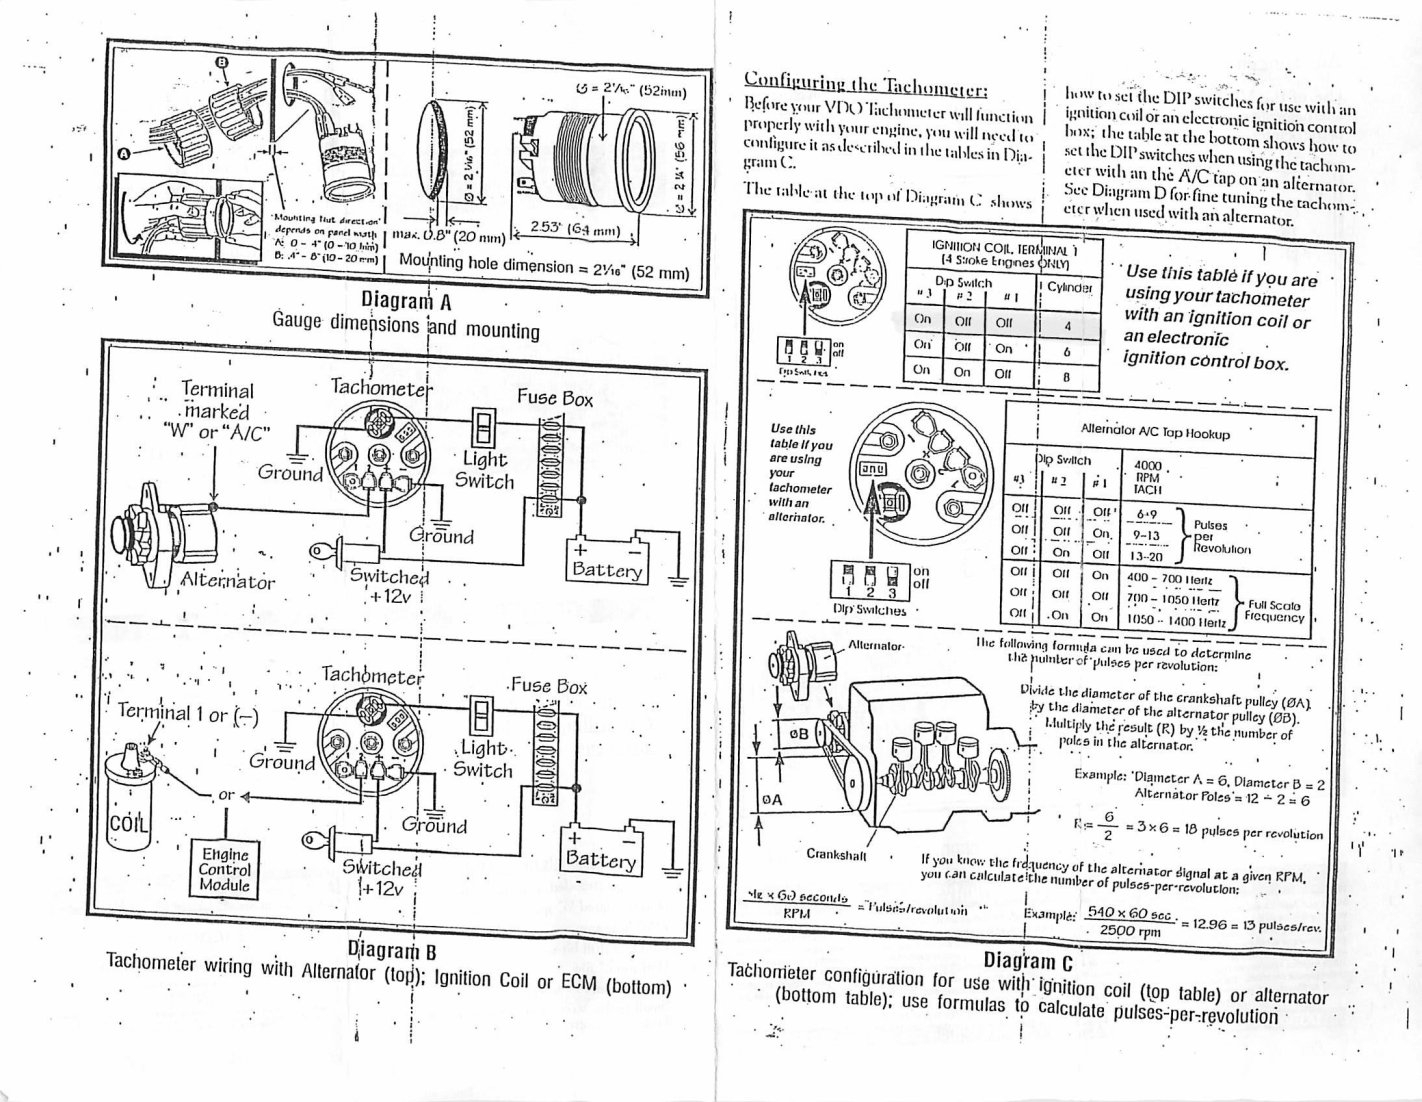 yamaha marine gauge wiring diagram tachometer wiring diagram for yamaha motorcycles auto electrical  tachometer wiring diagram for yamaha